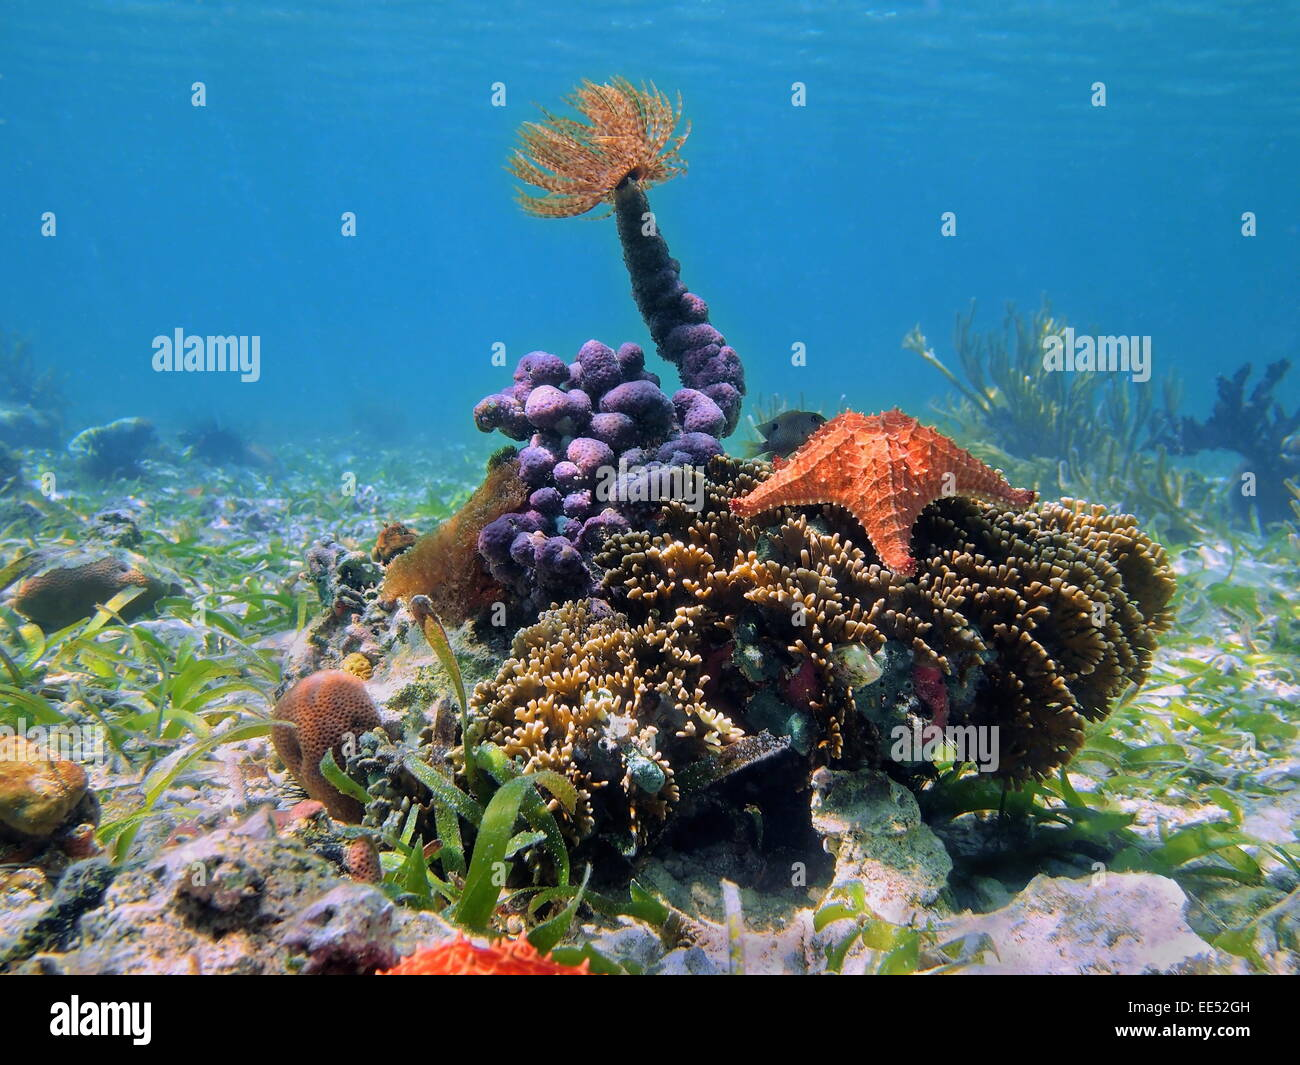 Colorful tropical sea life underwater with a tube worm on top of sponges, and a starfish over coral, Caribbean Stock Photo